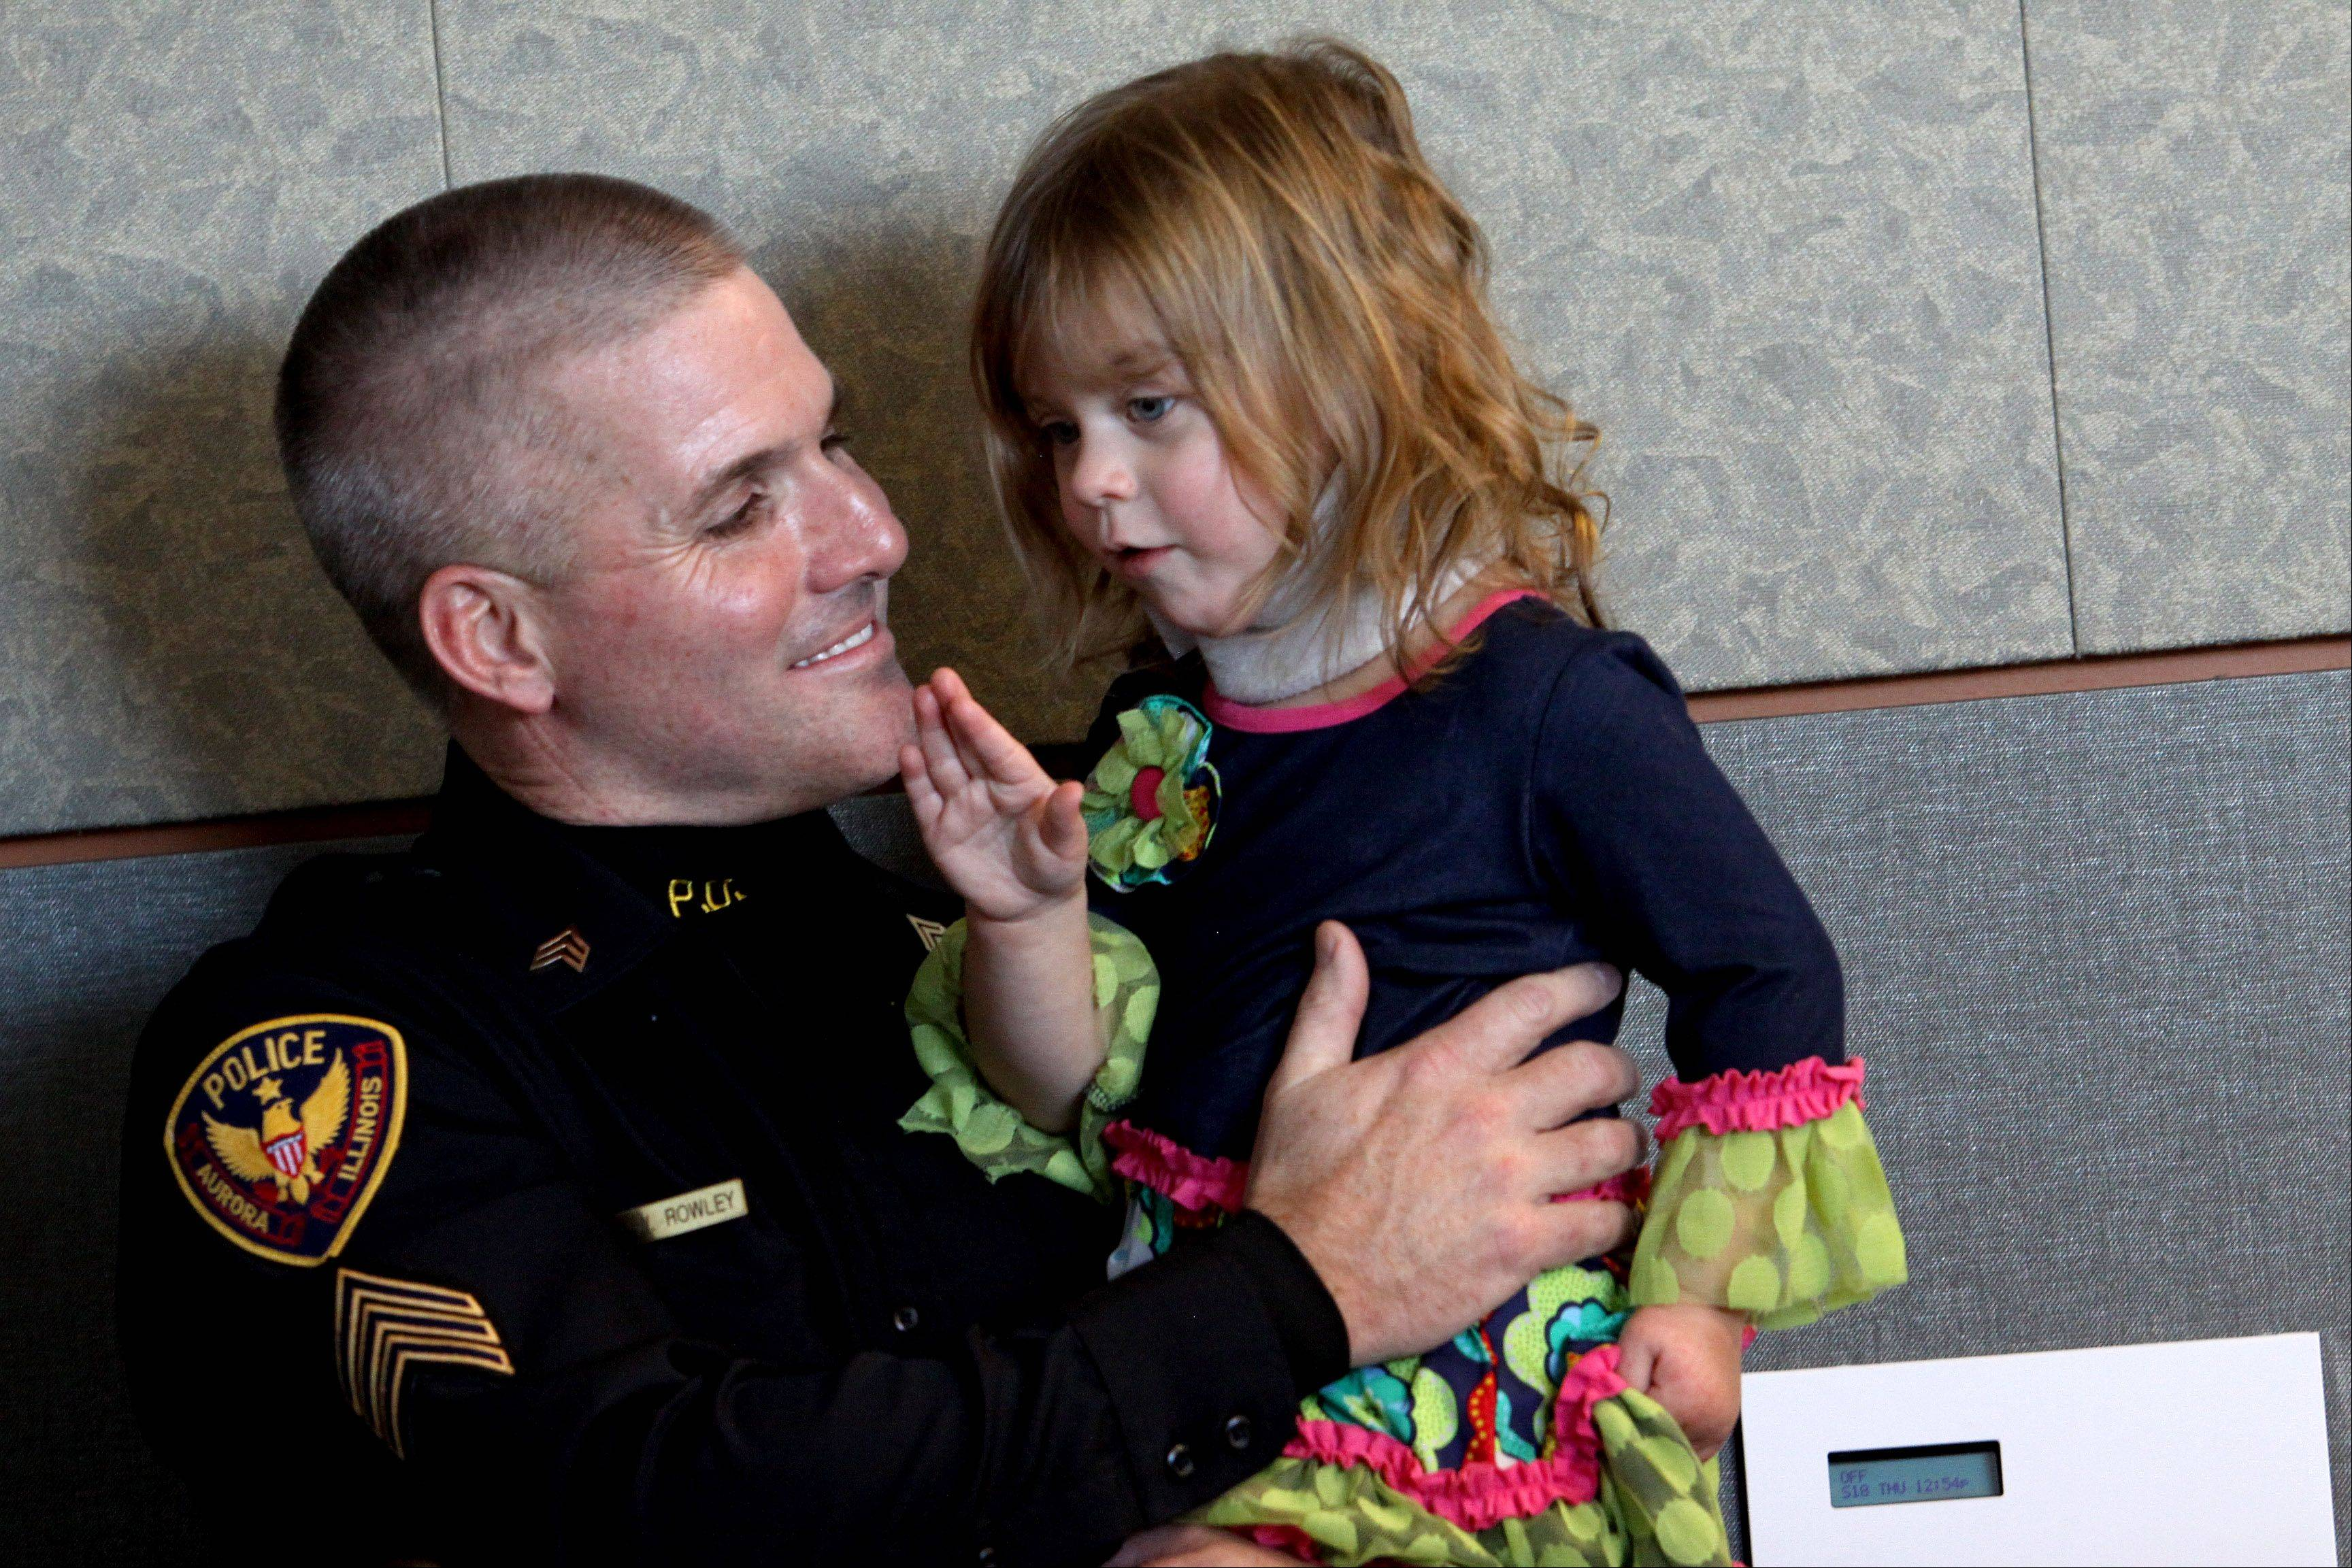 Aurora police Sgt. Bill Rowley talks with 2-year-old Abby Schmidt during a reunion Thursday in Aurora. Rowley used CPR to save Abby's life after she was severely injured in an October crash.